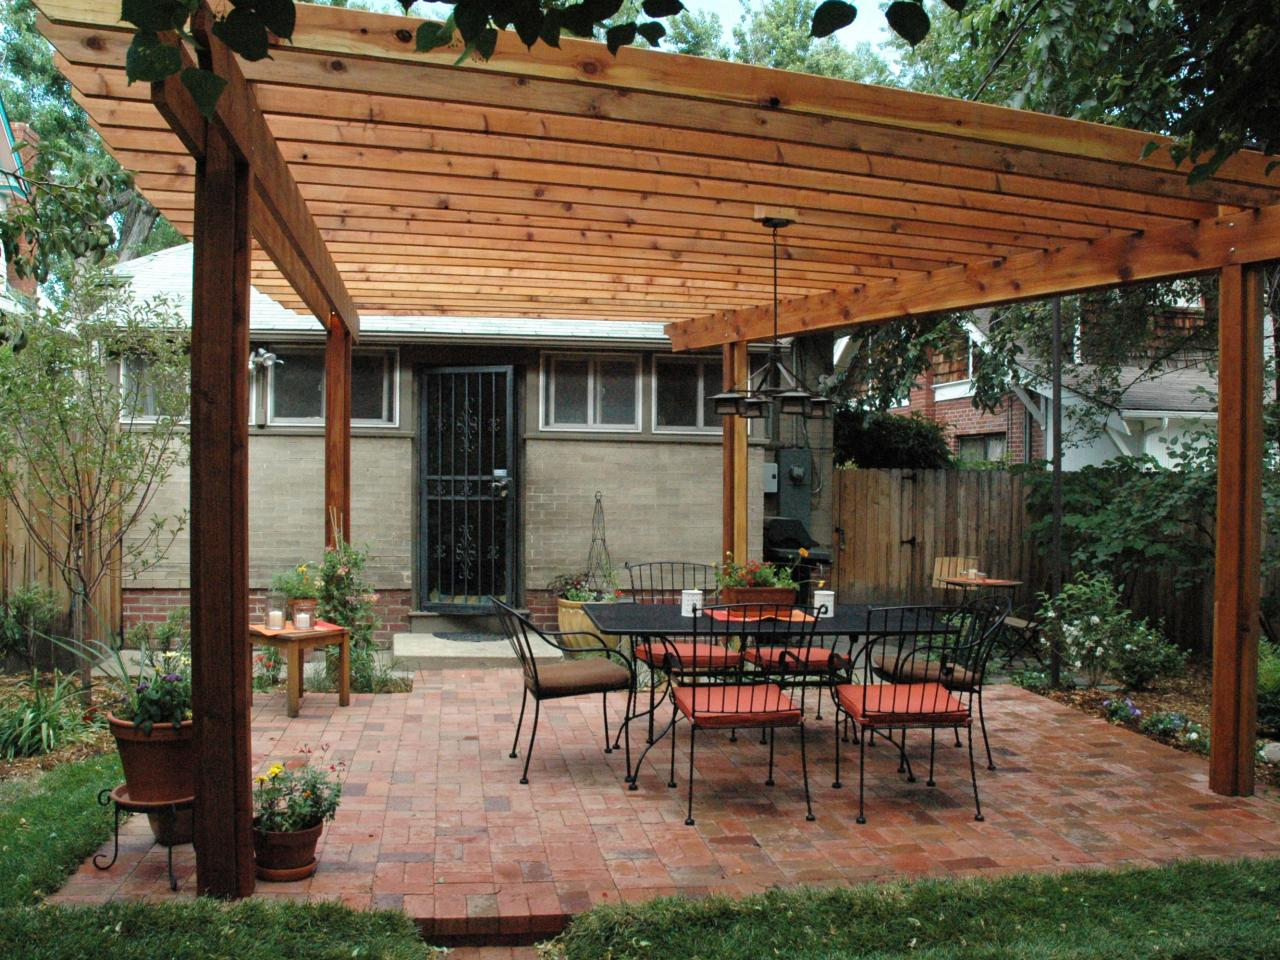 Arbor Installation-Allen TX Professional Landscapers & Outdoor Living Designs-We offer Landscape Design, Outdoor Patios & Pergolas, Outdoor Living Spaces, Stonescapes, Residential & Commercial Landscaping, Irrigation Installation & Repairs, Drainage Systems, Landscape Lighting, Outdoor Living Spaces, Tree Service, Lawn Service, and more.